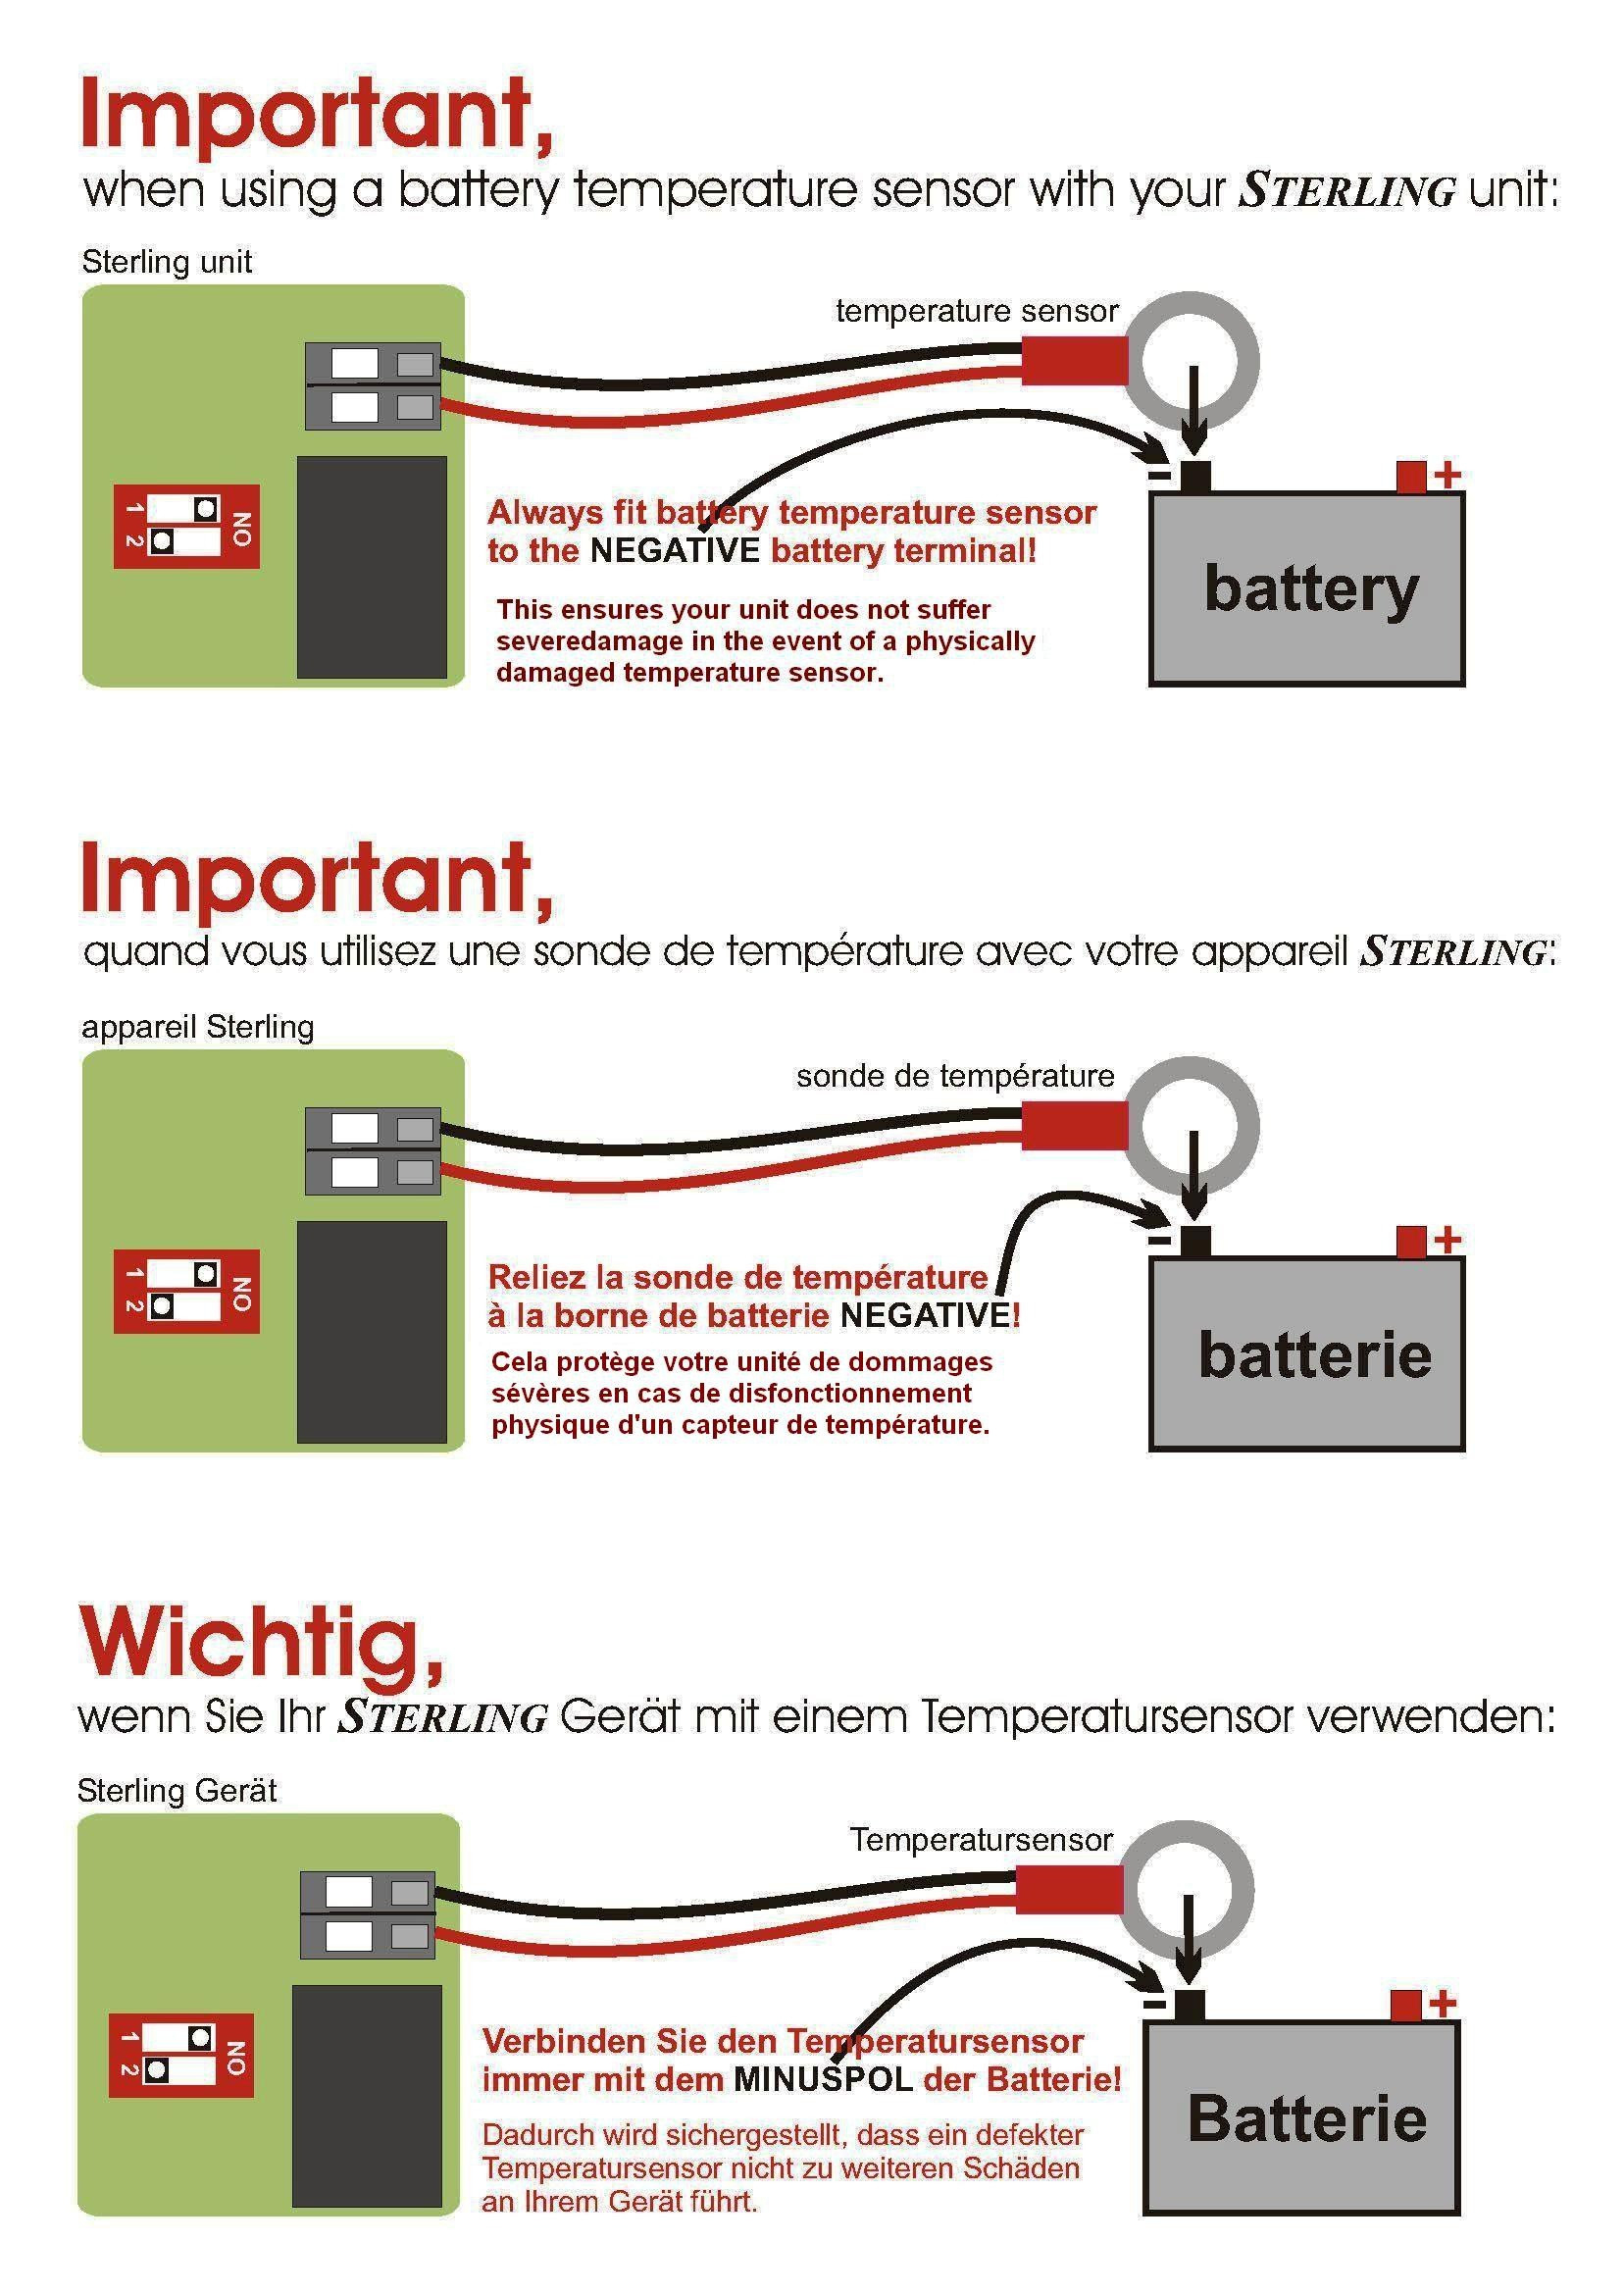 Rv Battery Disconnect Switch Wiring Diagram Fresh Rv Battery – Rv Battery Disconnect Switch Wiring Diagram